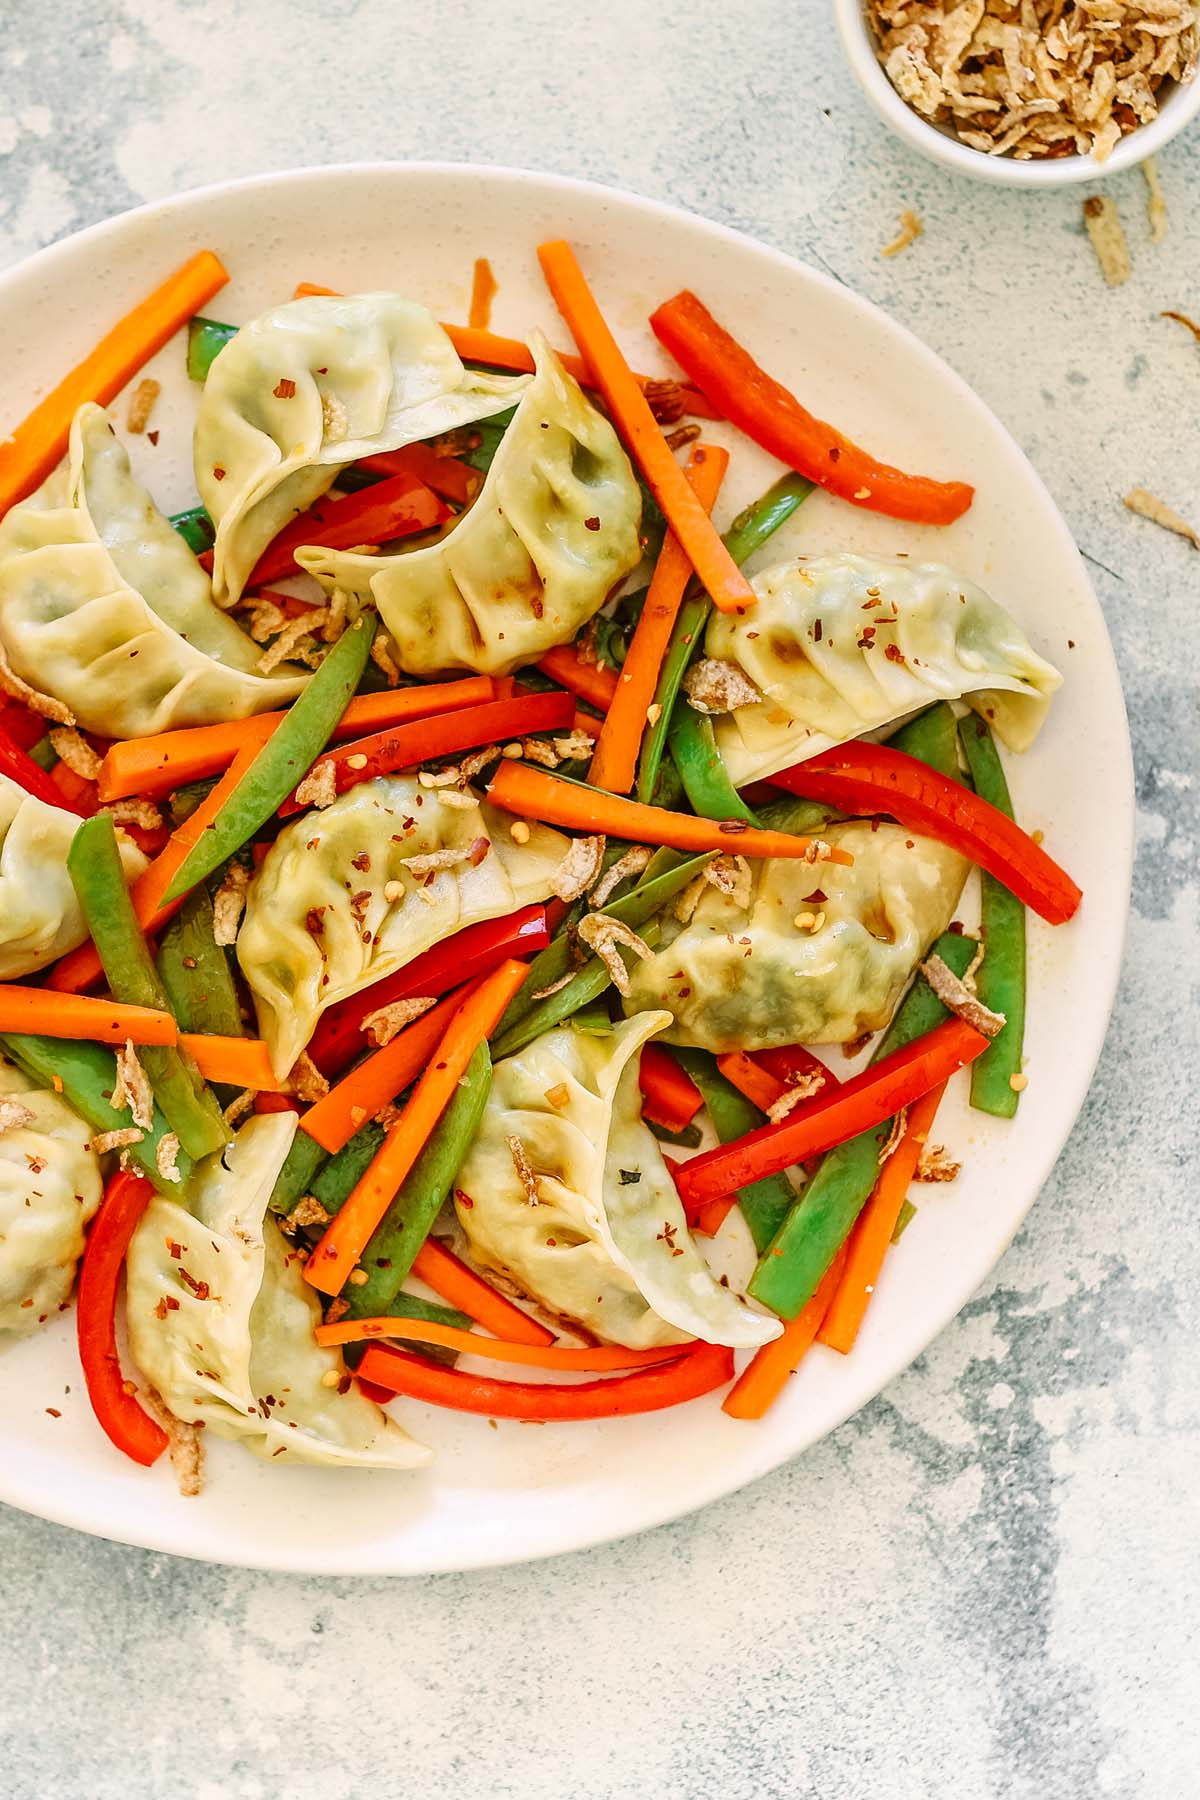 Dumpling Stir Fry - You Totally Got This - Quick & Easy Dinner Recipe